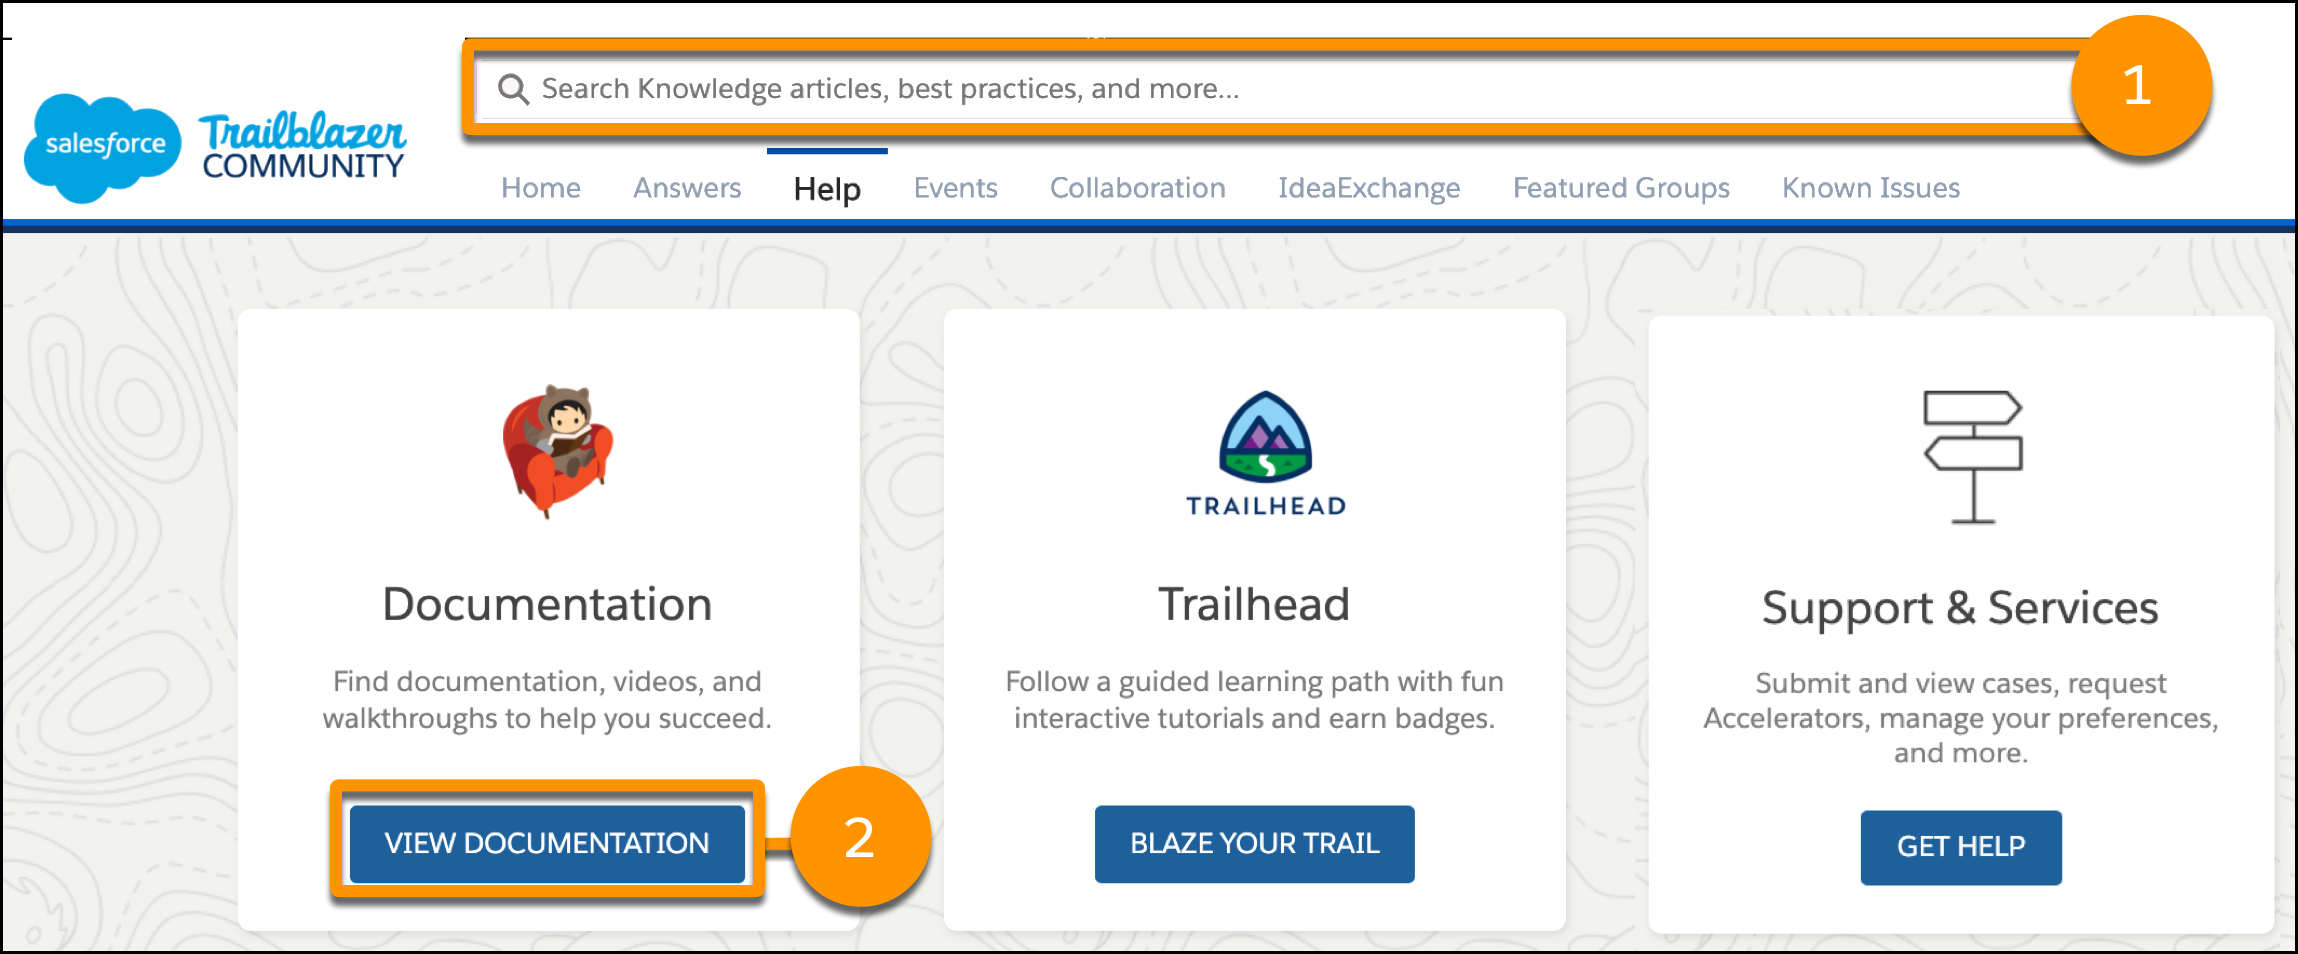 Salesforce Help home page search and the documentation tile identified.